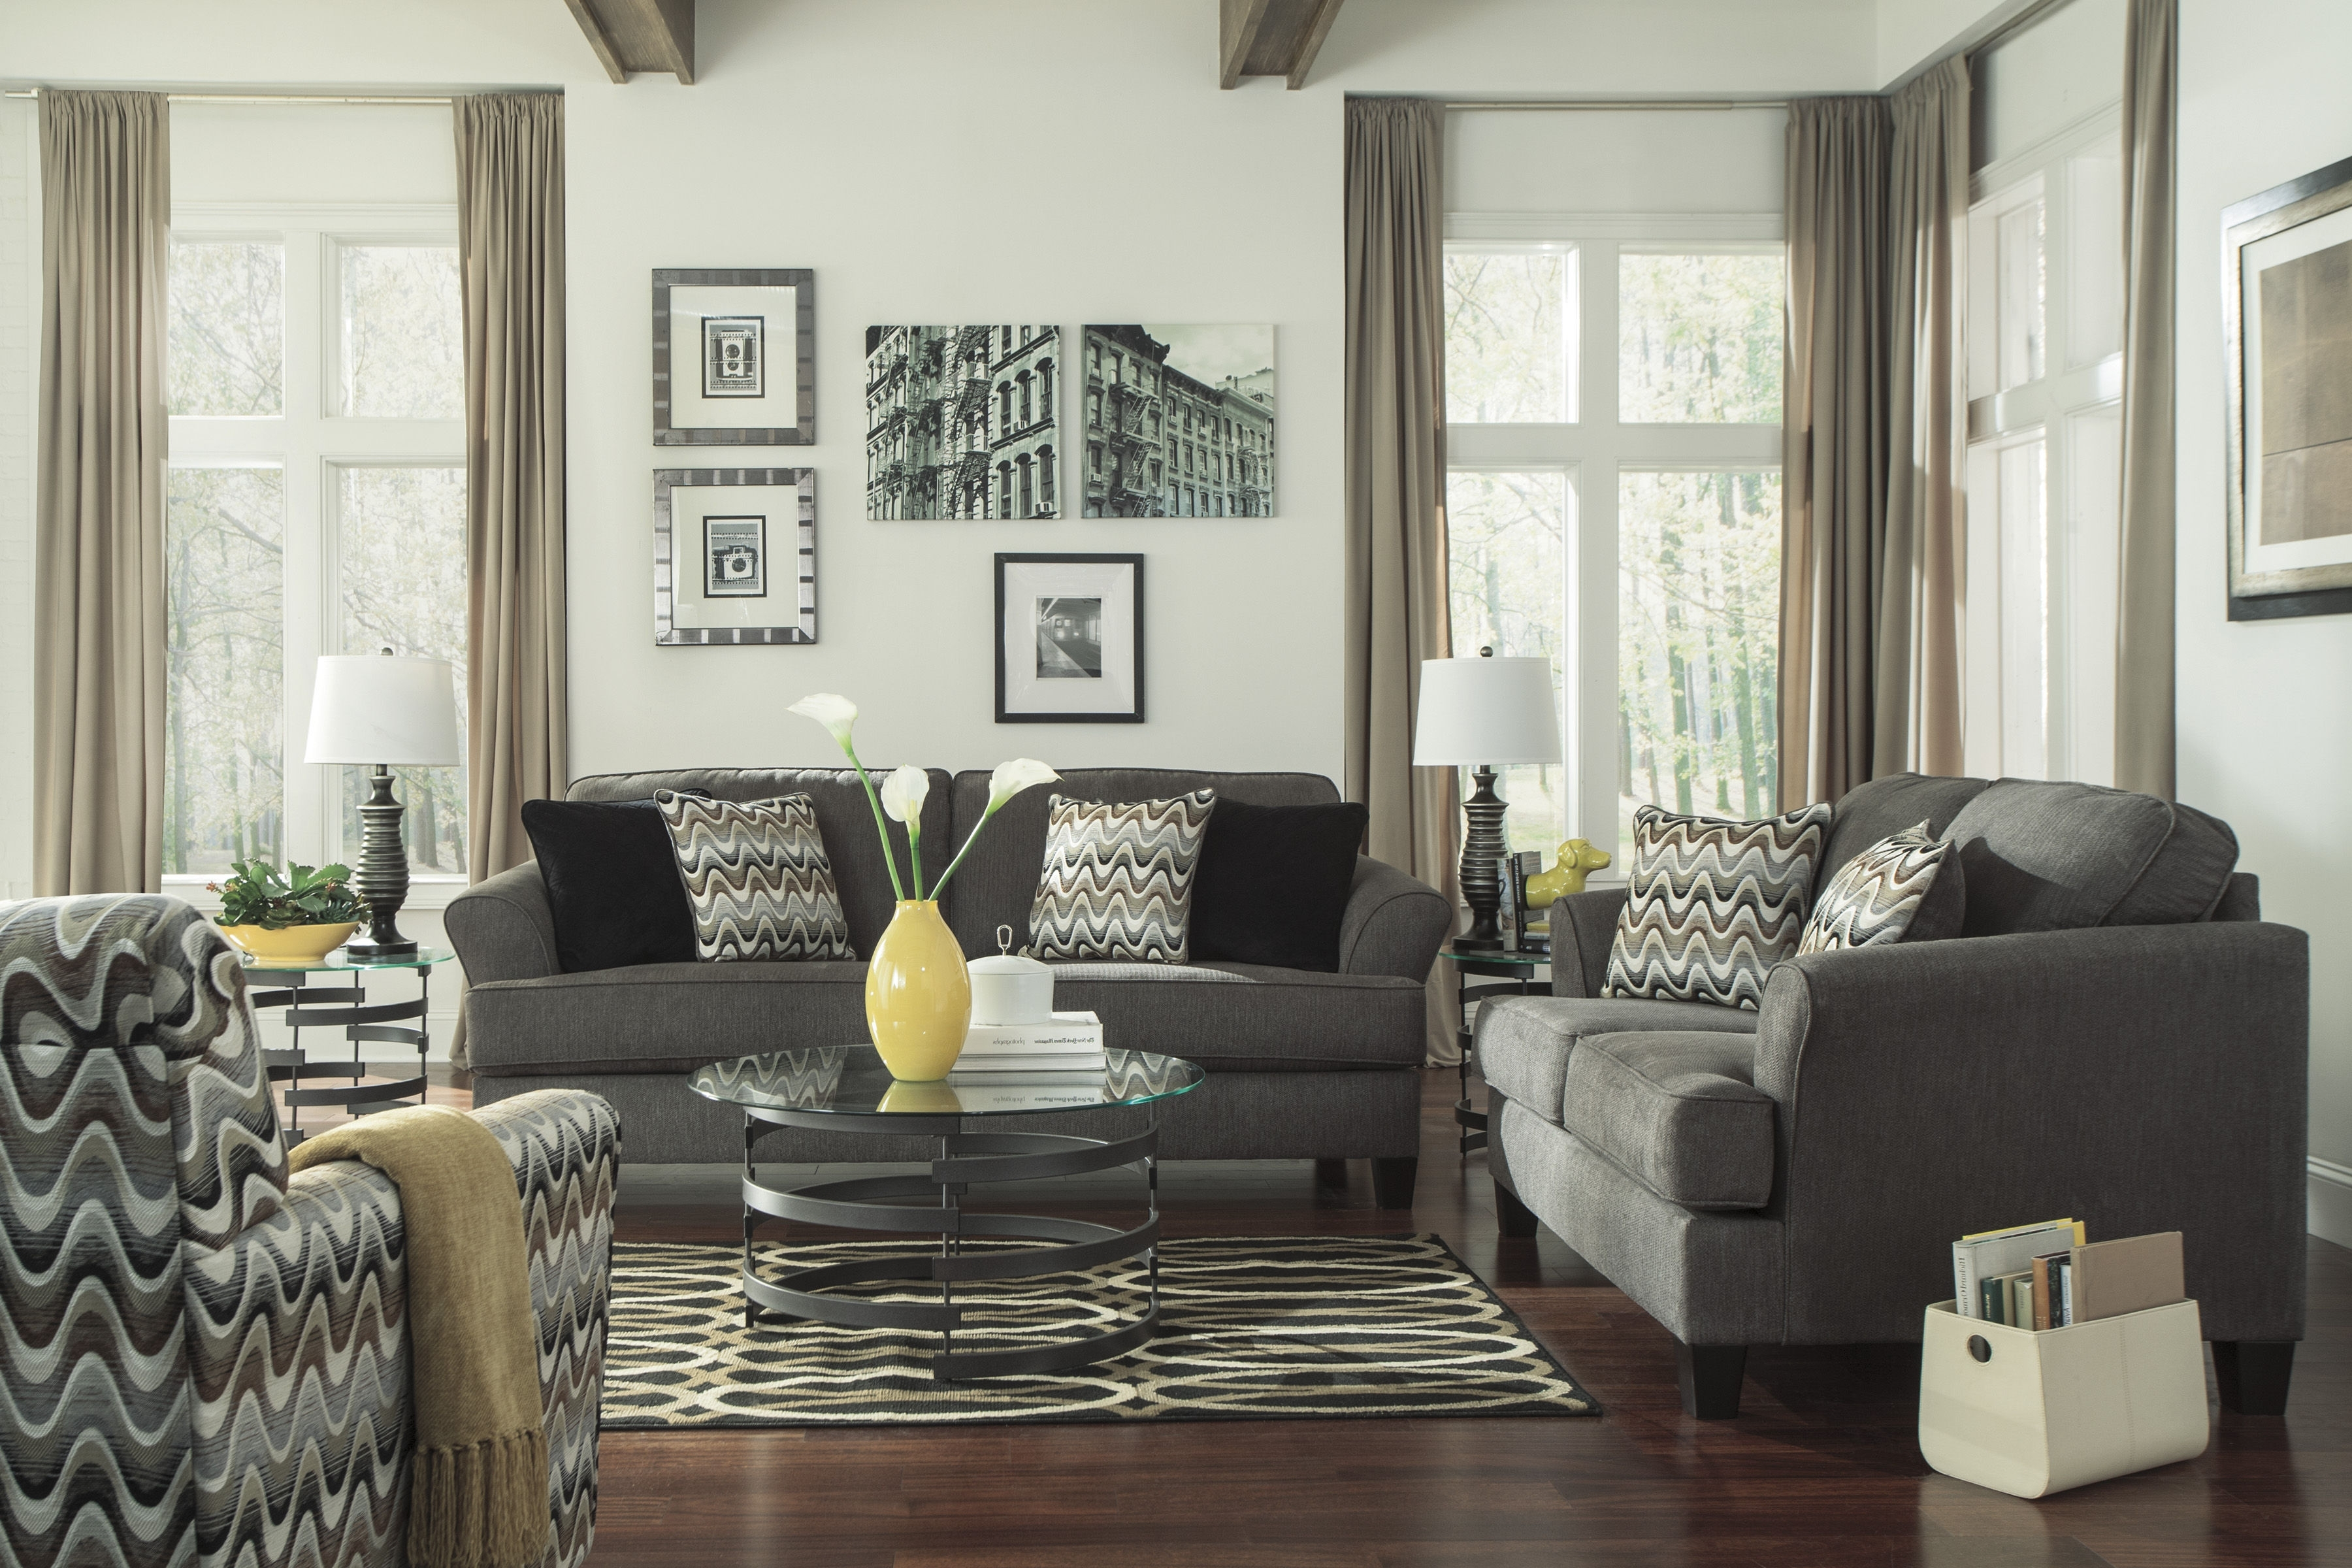 The Classy Home Intended For Sofa And Accent Chair Sets (View 19 of 20)